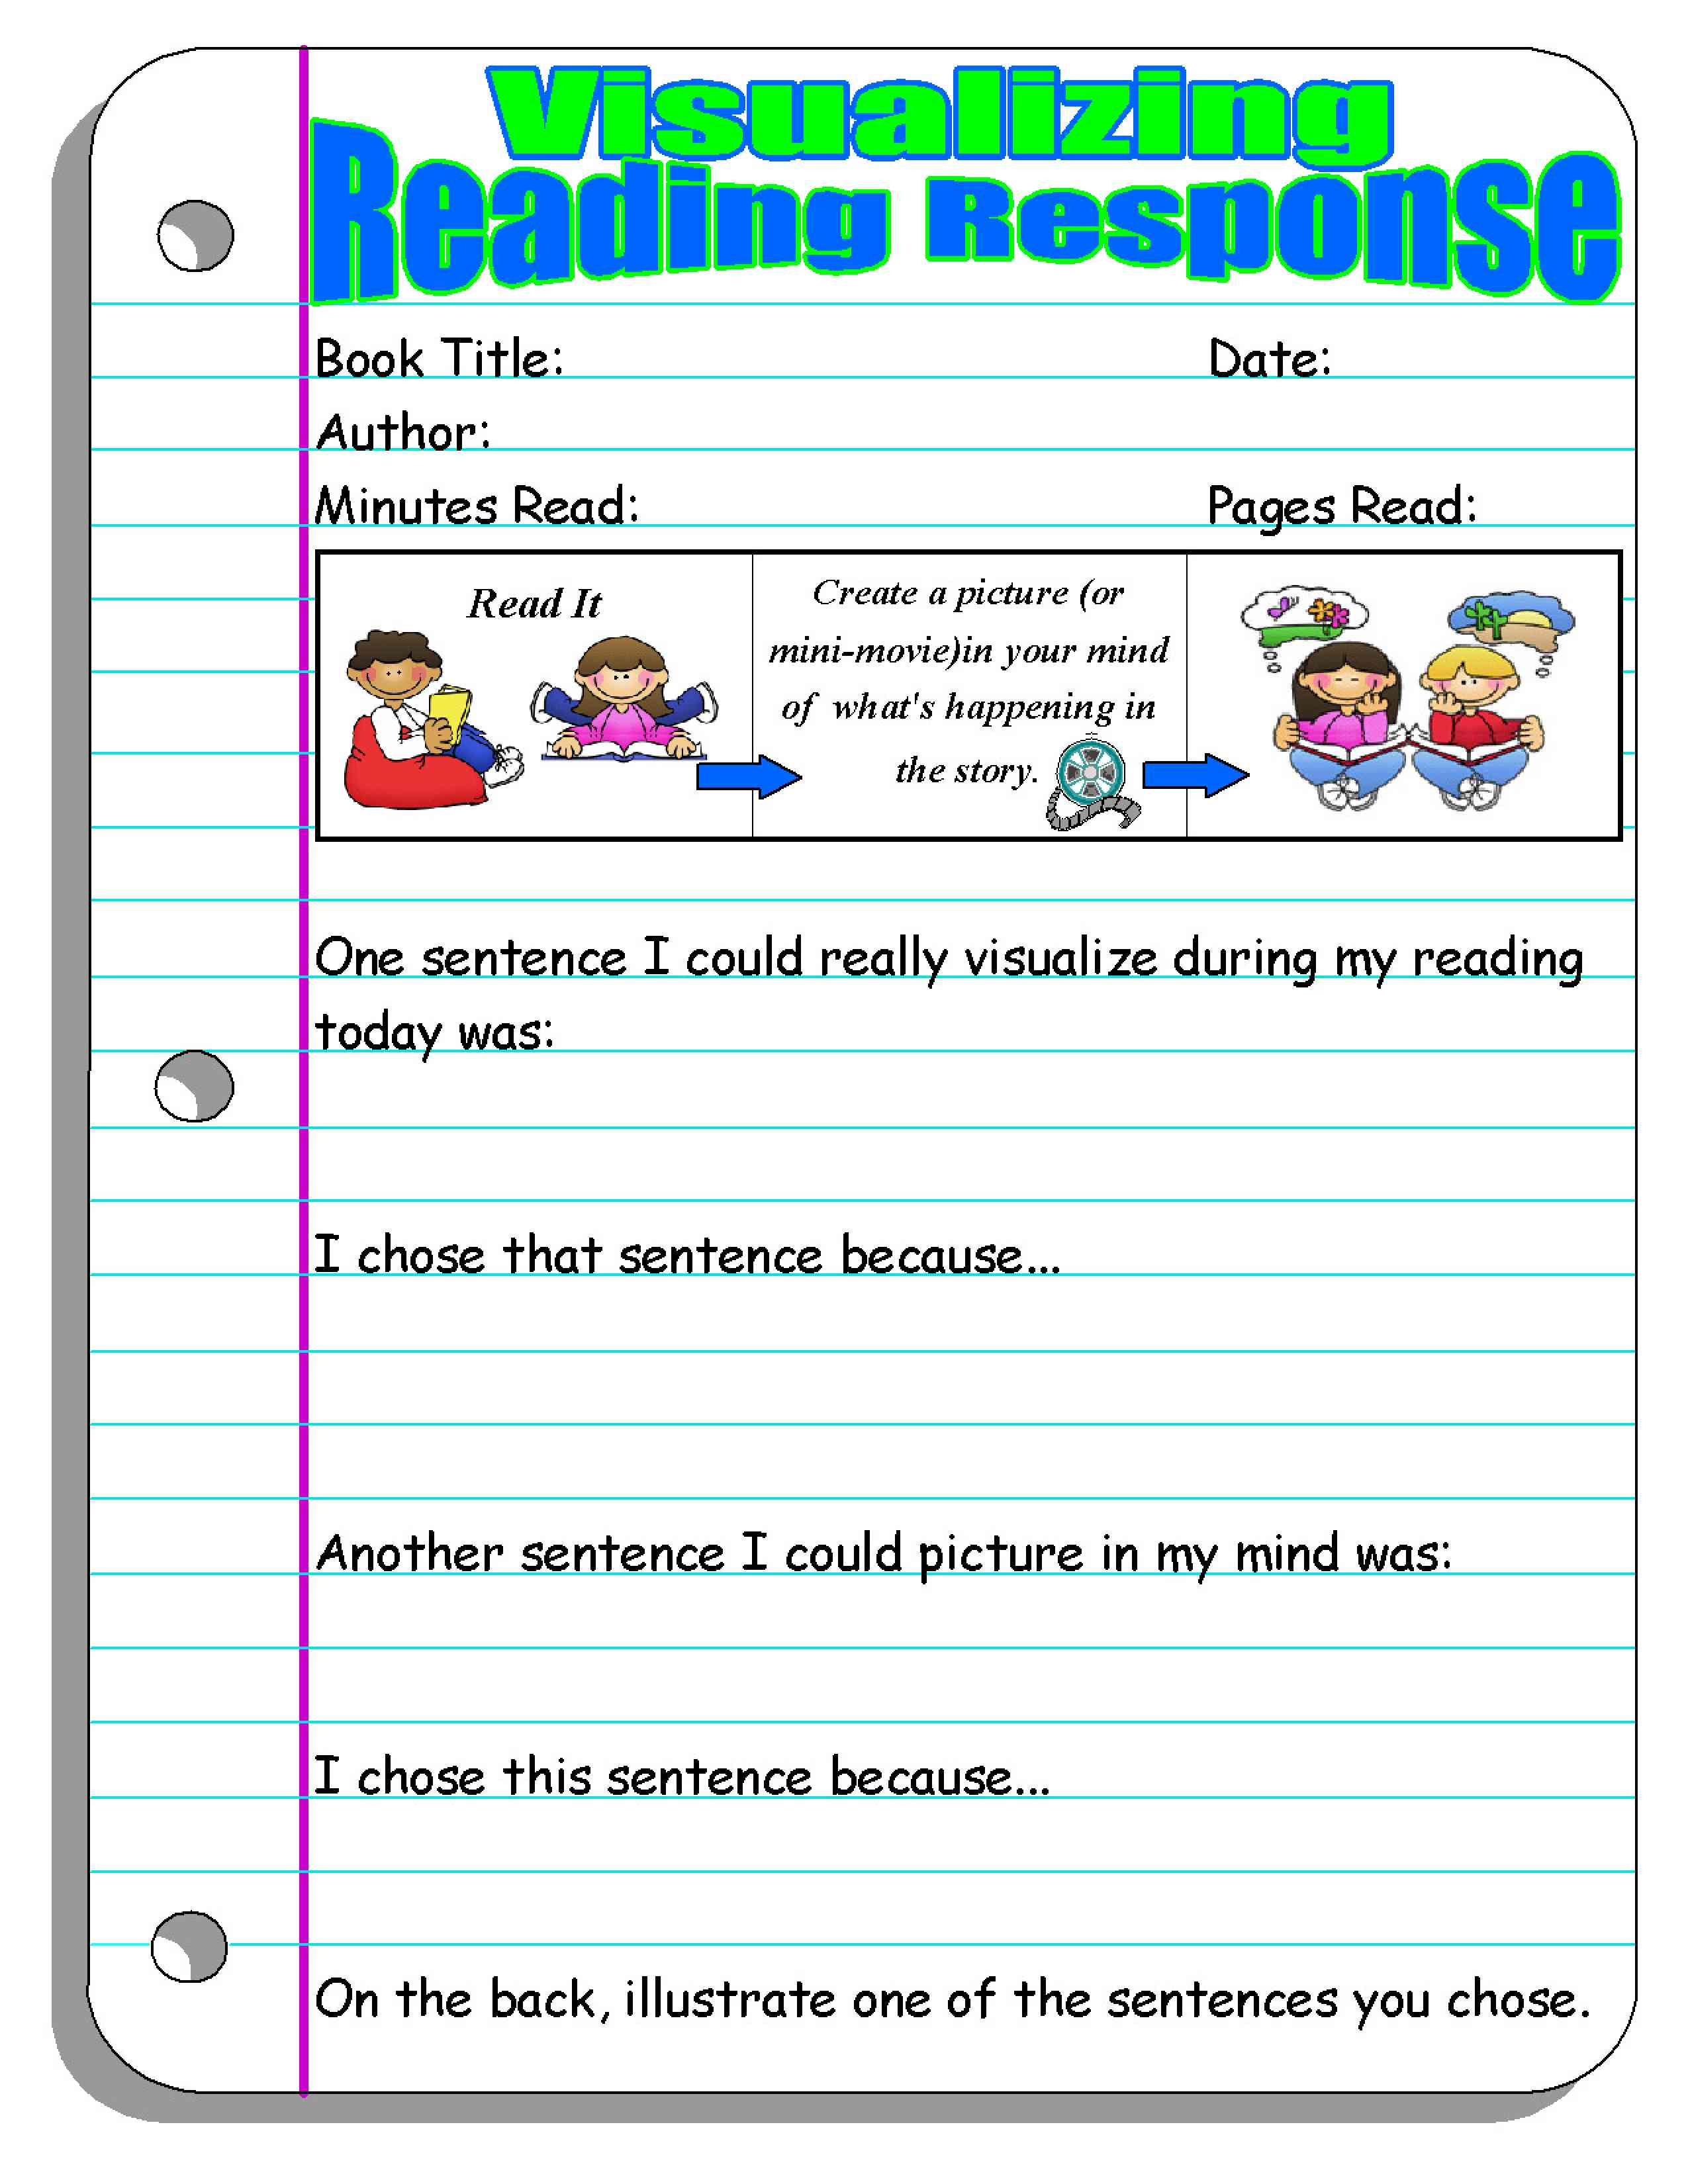 Ee F Df E Cc A Cb further  as well Reading Response Visualizing Prompt as well Slide as well A C F F C Cff F. on visualization worksheets for first grade